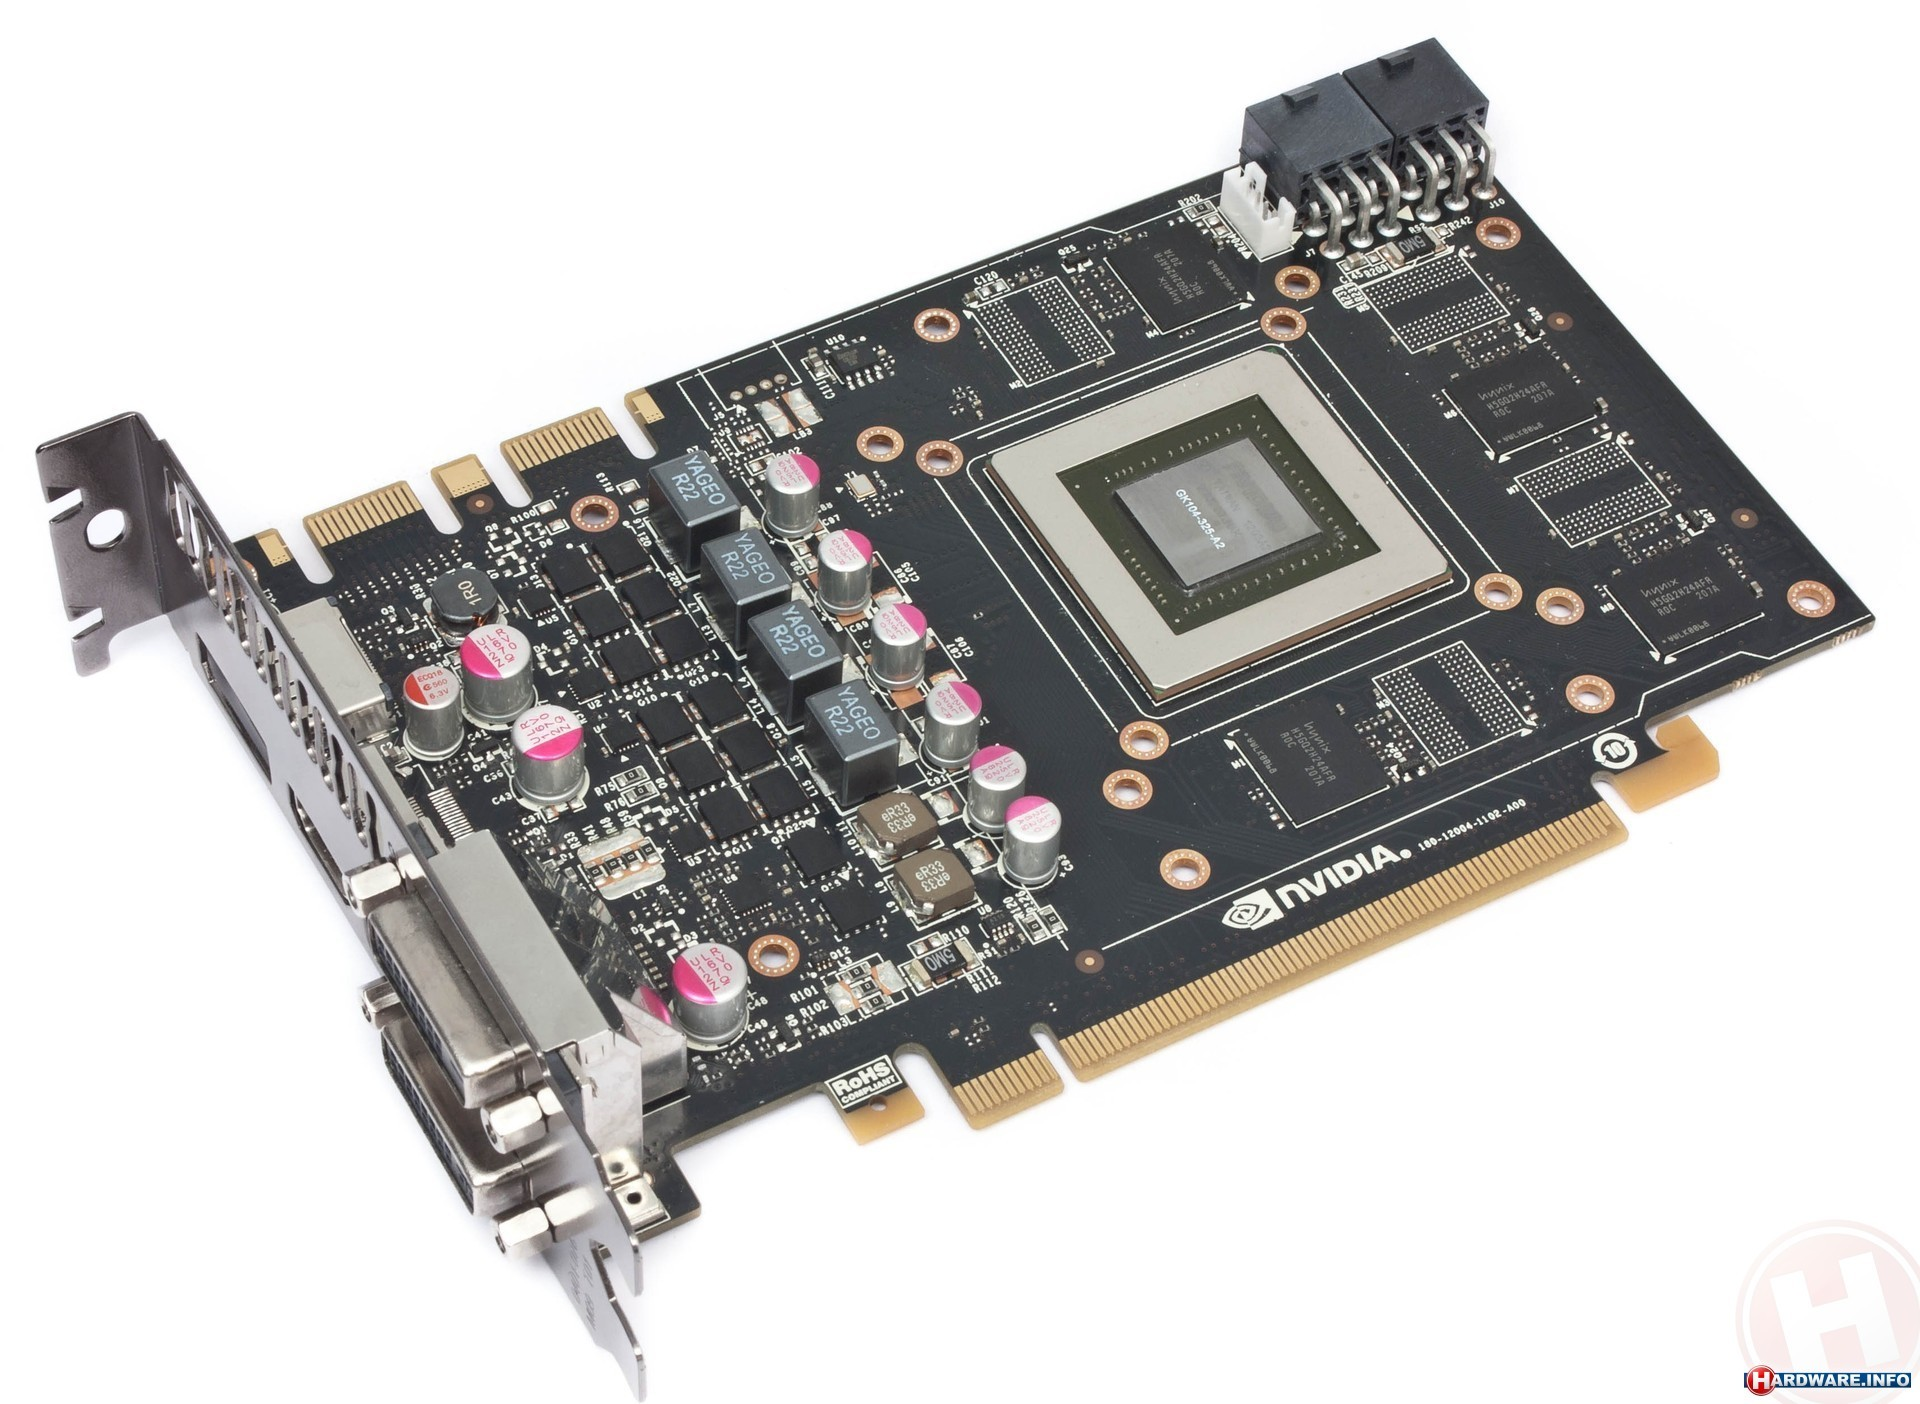 GTX 670, VRM cooling problem with ARCTIC Accelero Xtreme IV